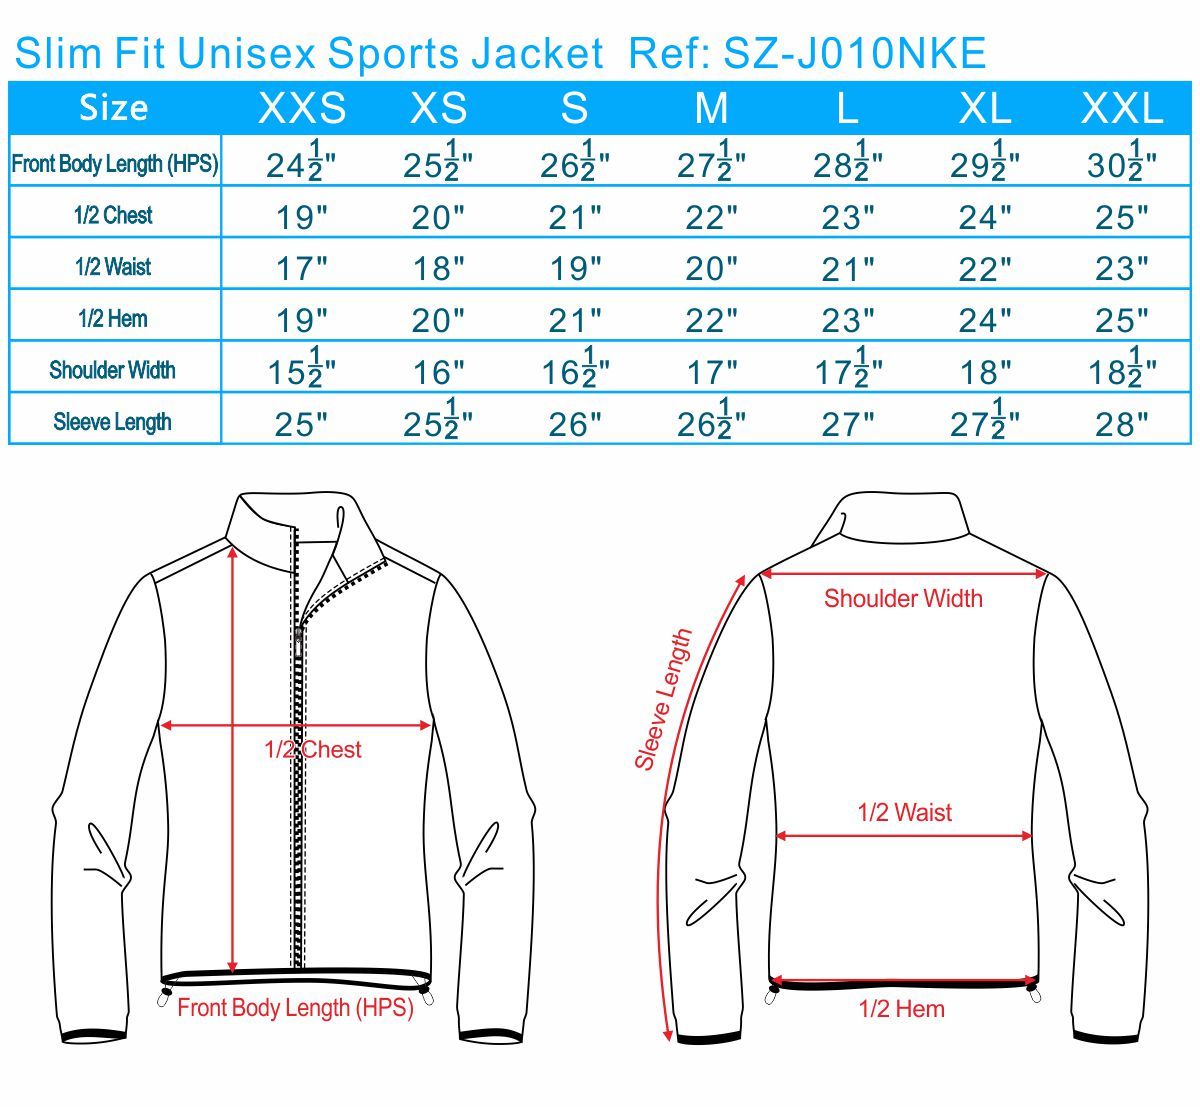 Slim Fit Unisex Sports Jacket